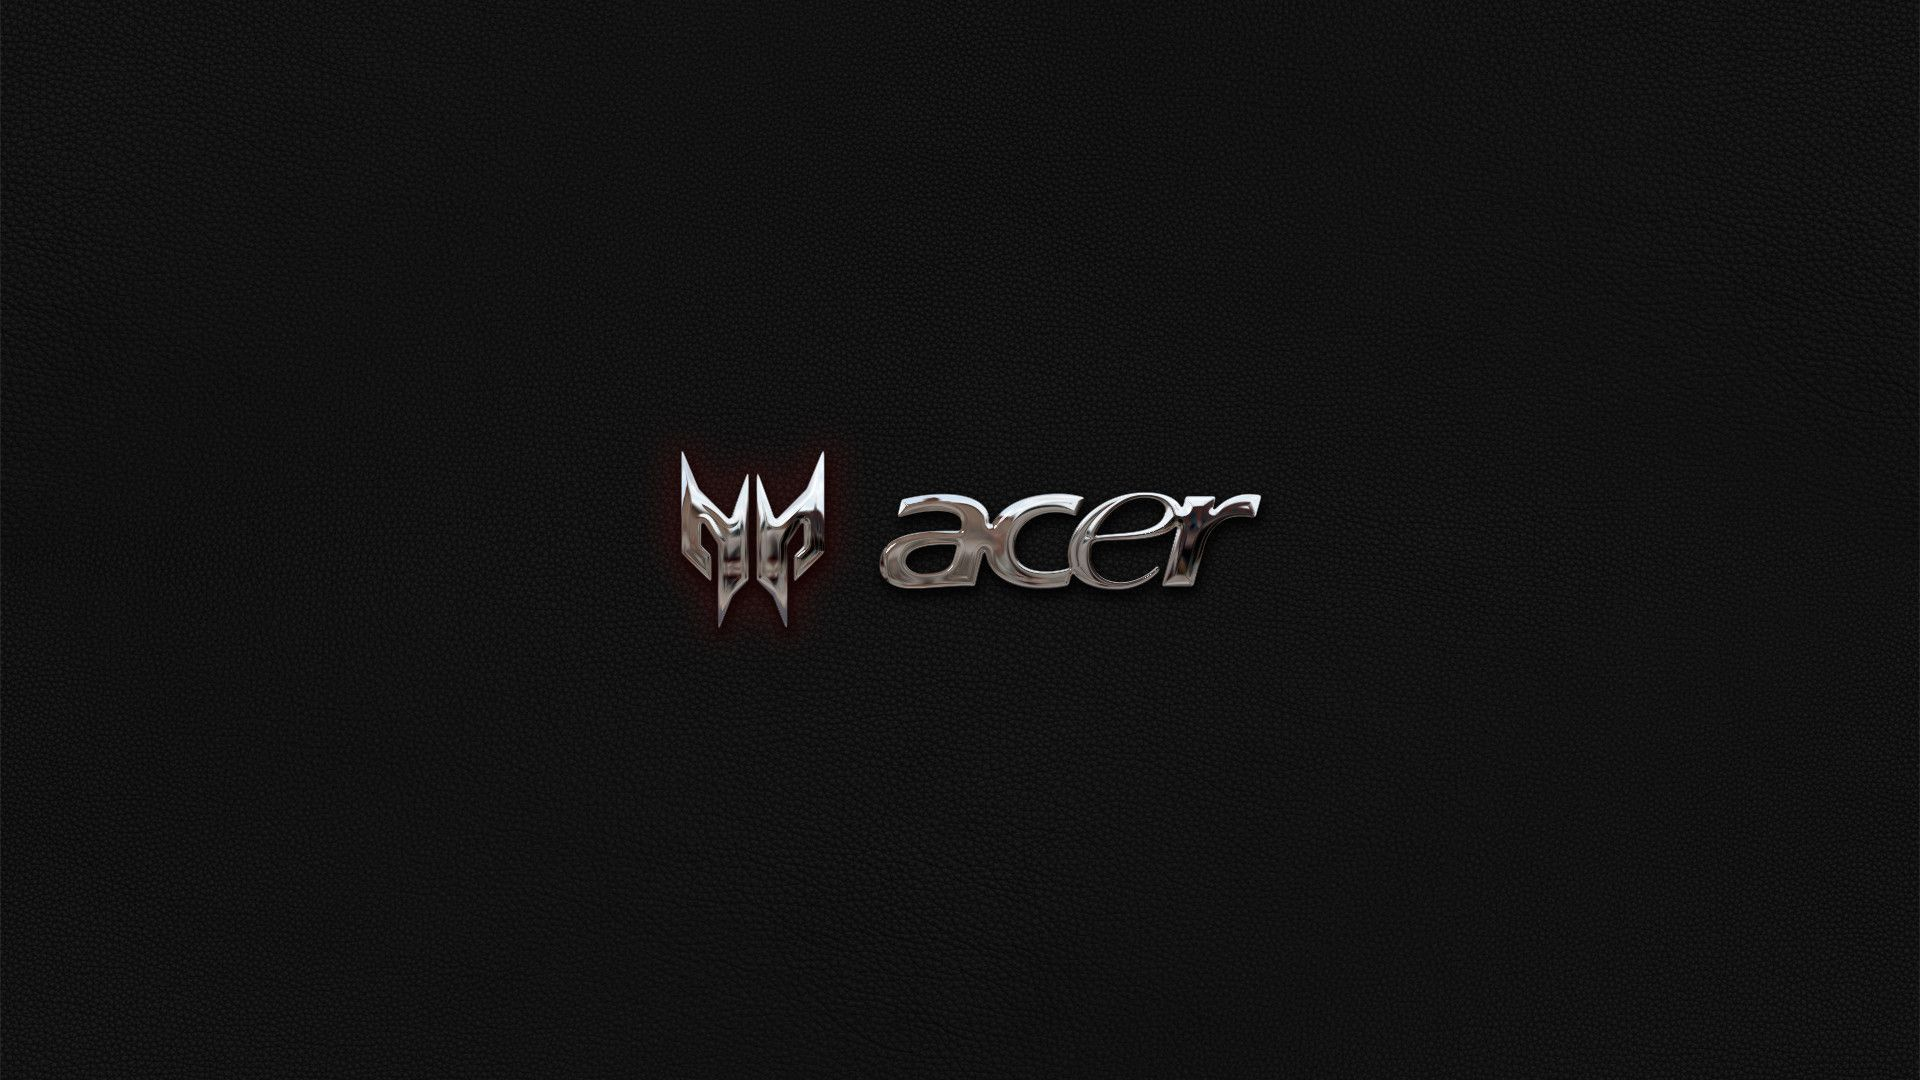 Acer hd wallpaper